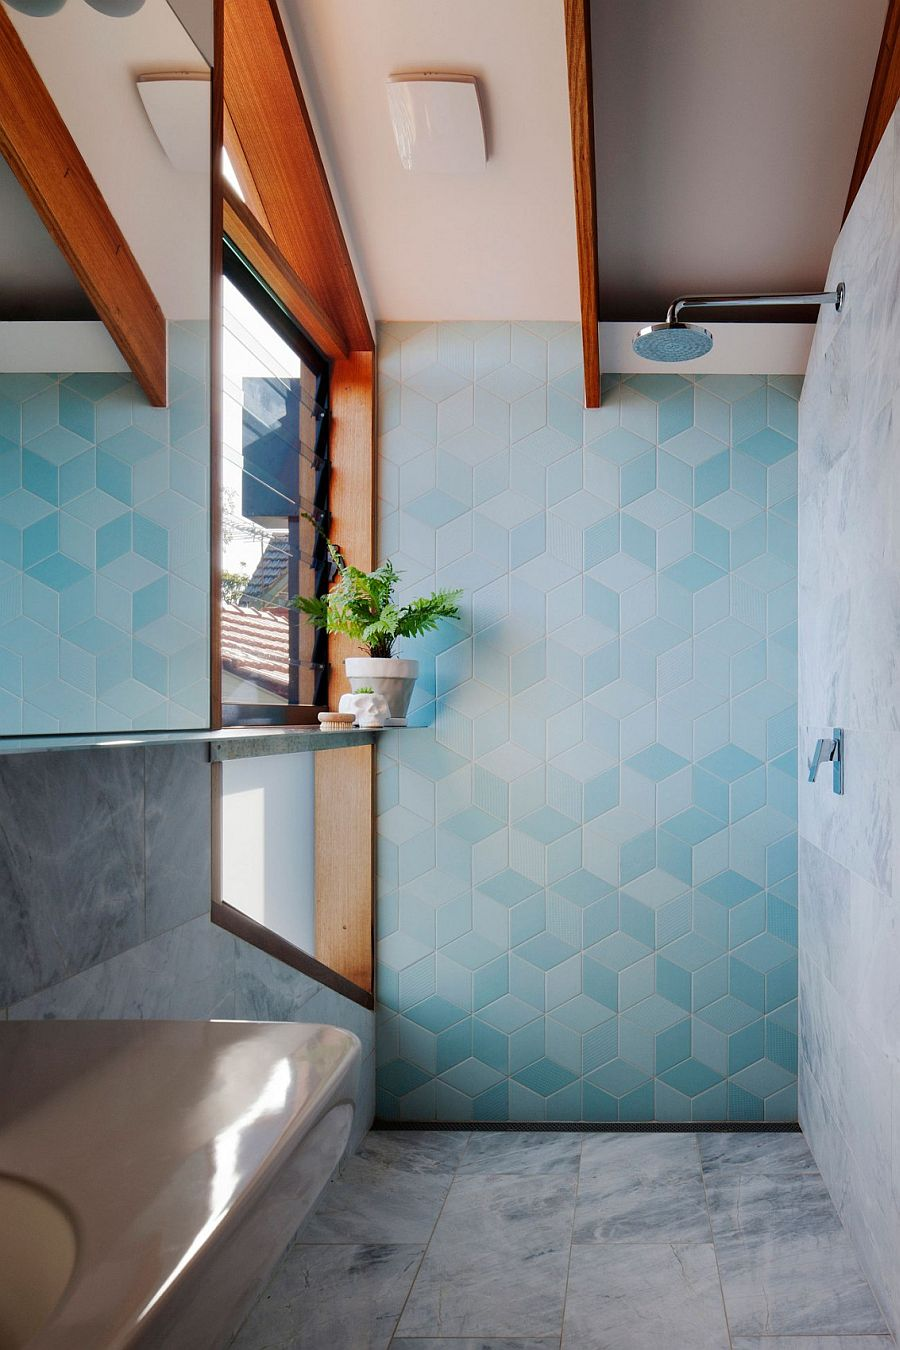 Fascinating use of blue tiles to bring texture and pattern to the modern bathroom